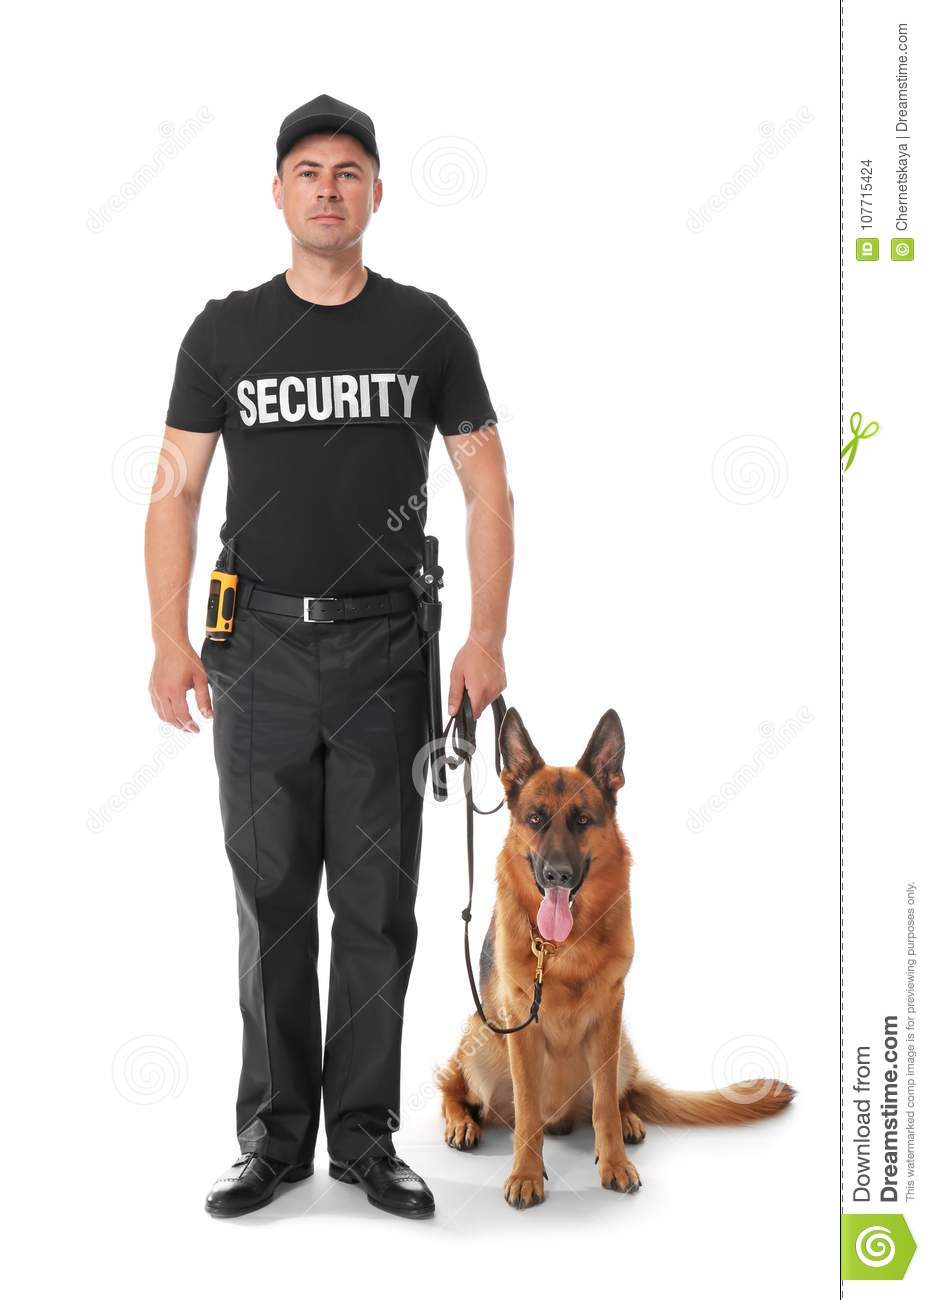 Security guard with dog